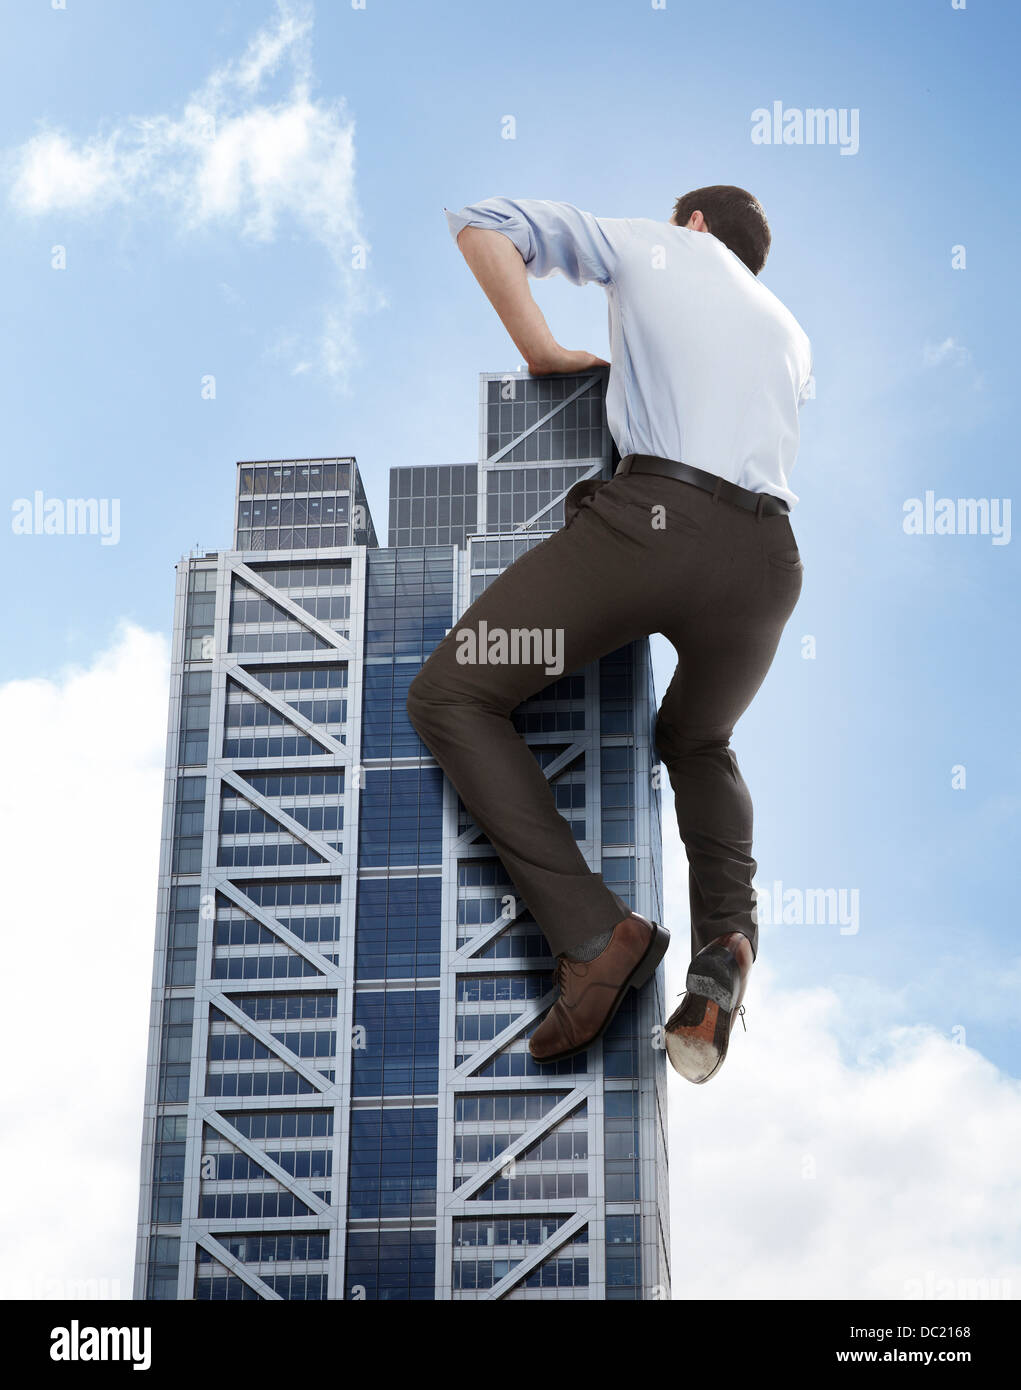 Oversized businessman climbing skyscraper, low angle view - Stock Image